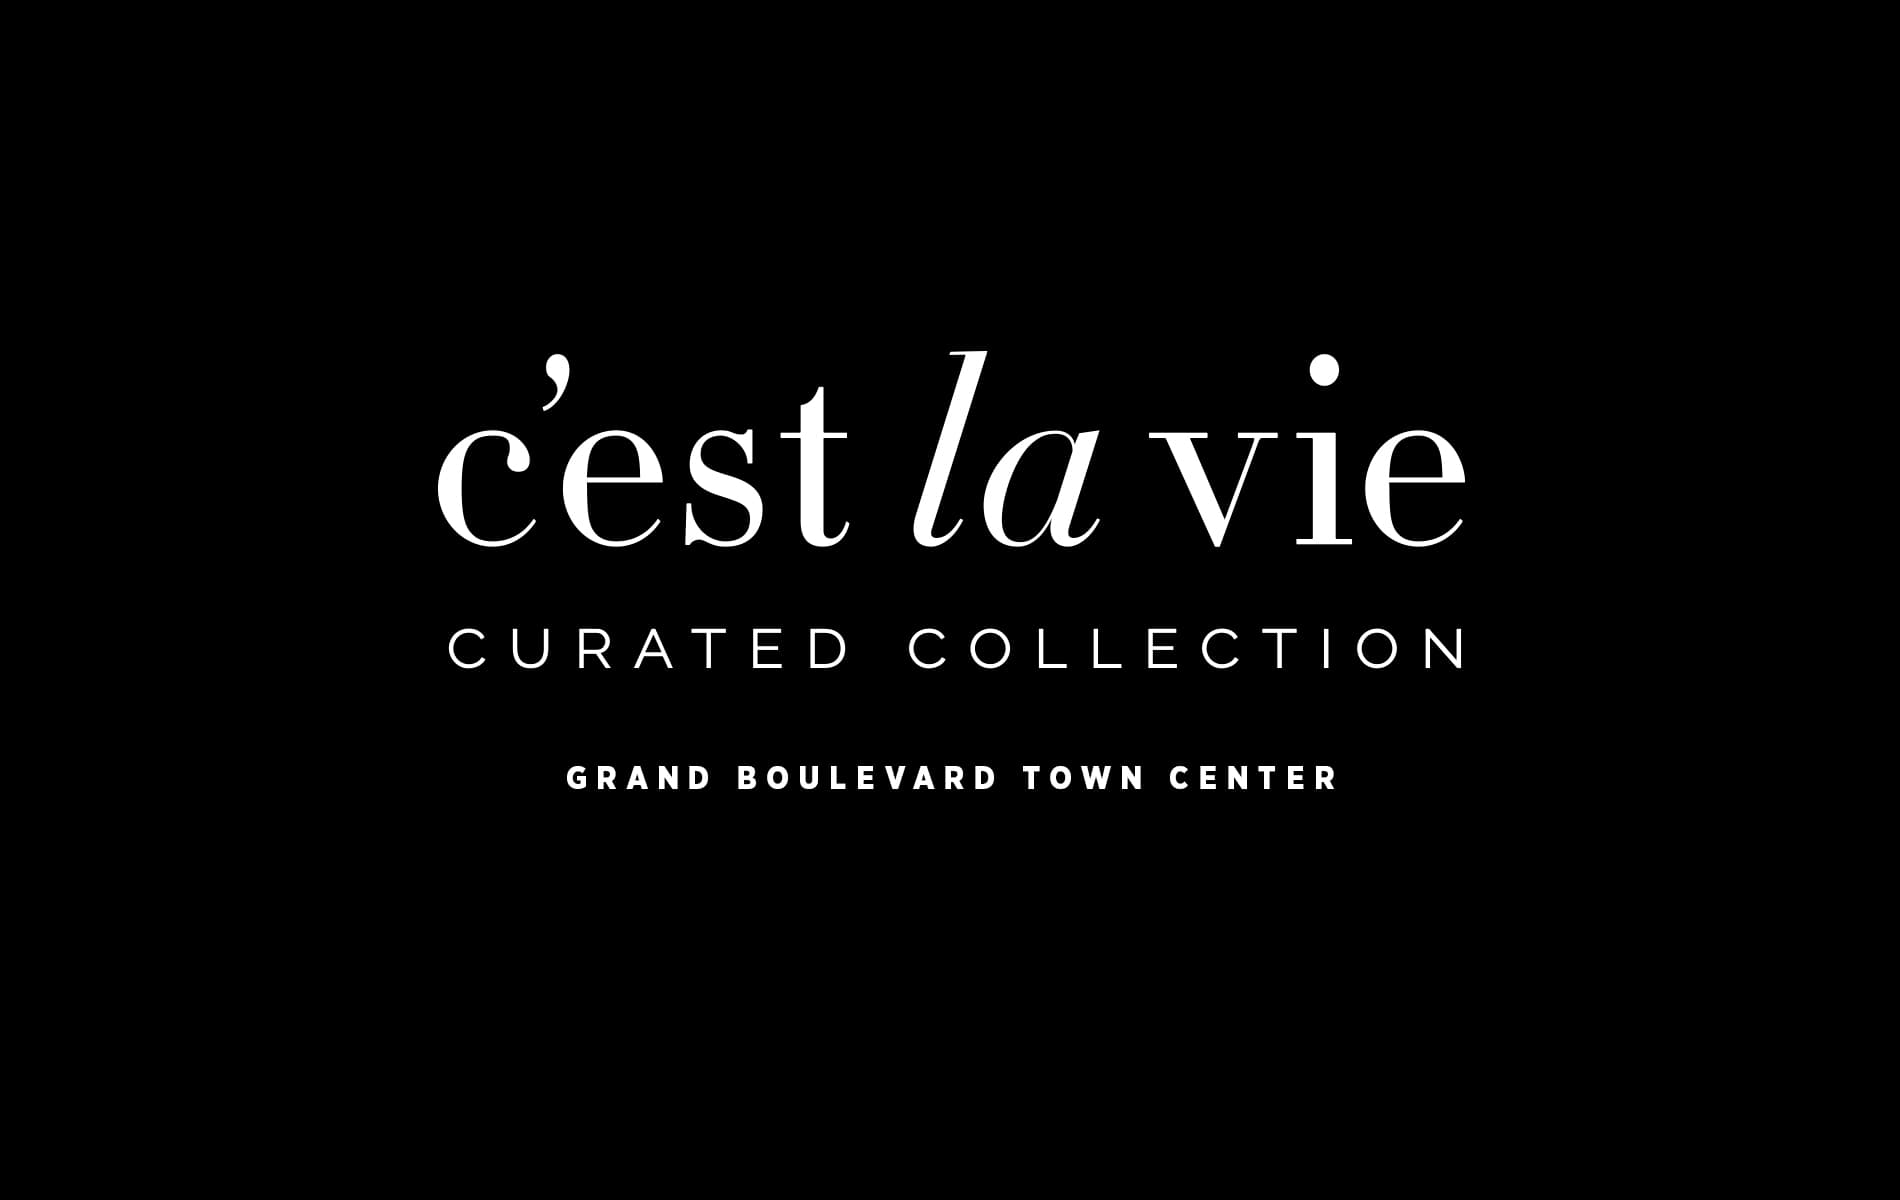 VIE Magazine C'est la VIE Curated Collection, Grand Boulevard Town Center